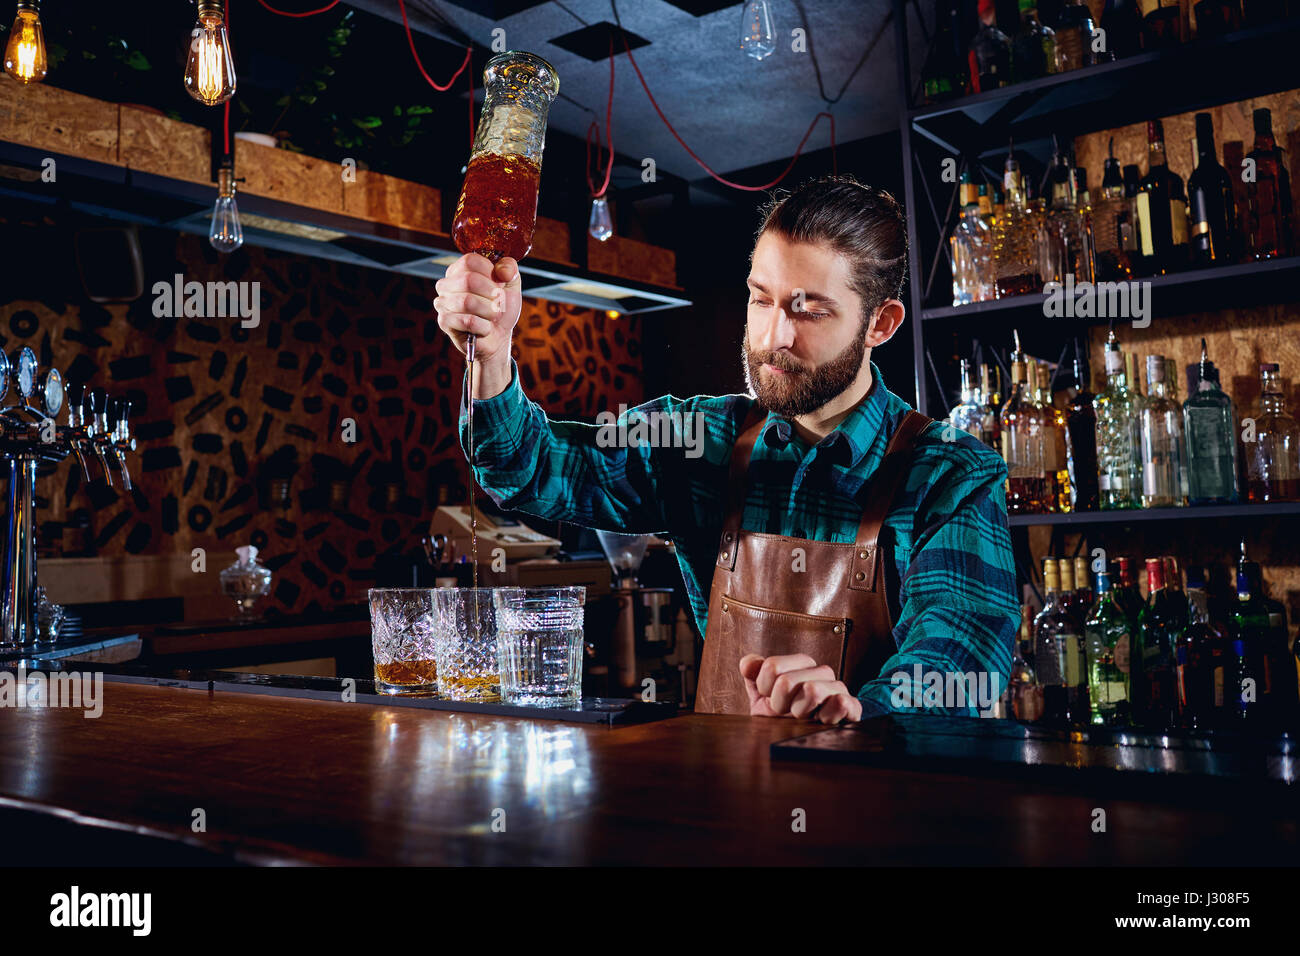 The barman with a beard pours alcohol into glasses in a bar - Stock Image